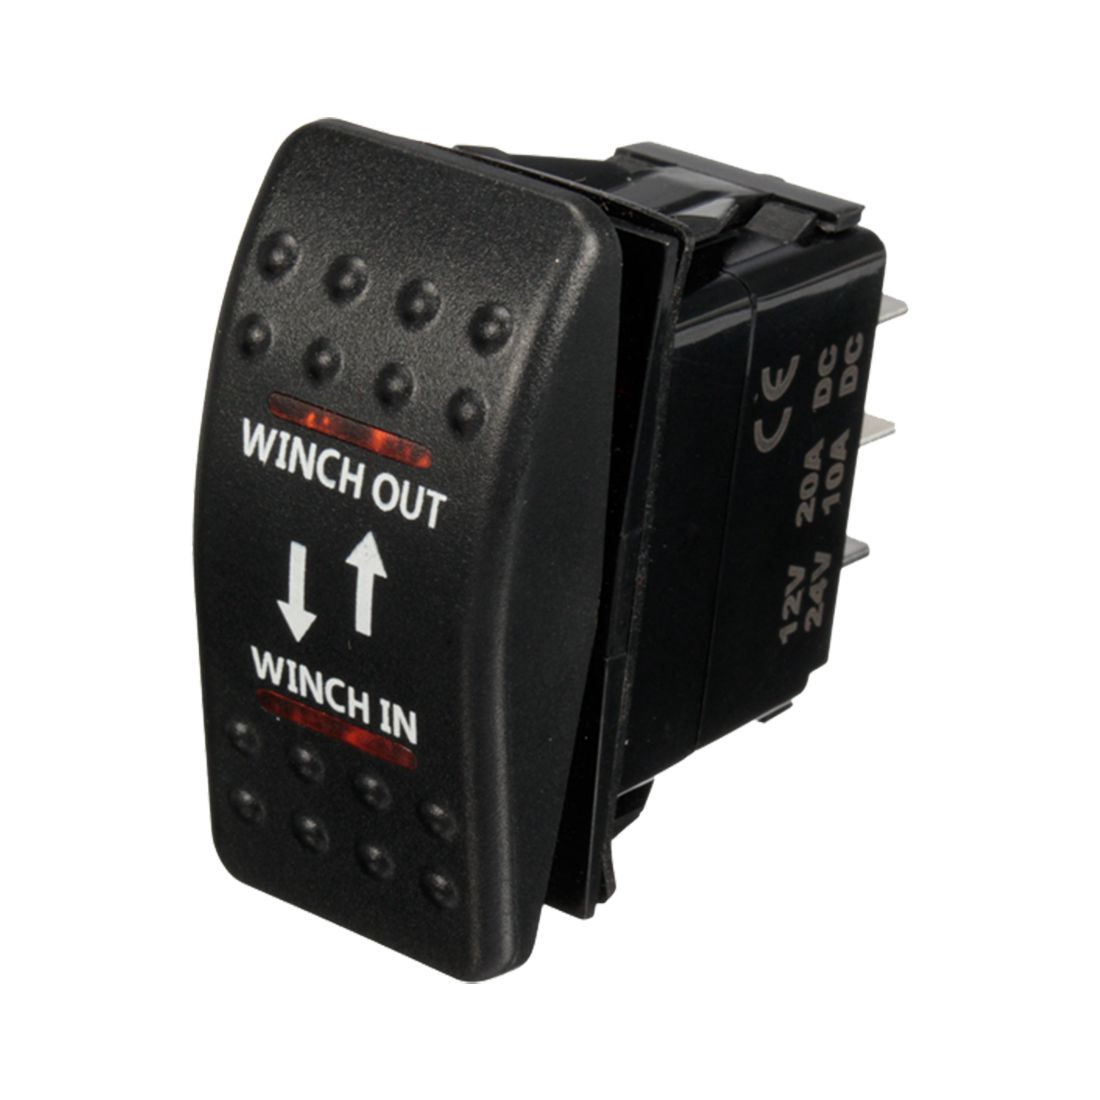 12V 20A Winch In Winch Out ON-OFF-ON Rocker Switch 7 Pin LED RED 1pc rocker switch ac 250v 15a 125v 20a red lamp dpst dpdt 4pin 6pin on off rocker switch